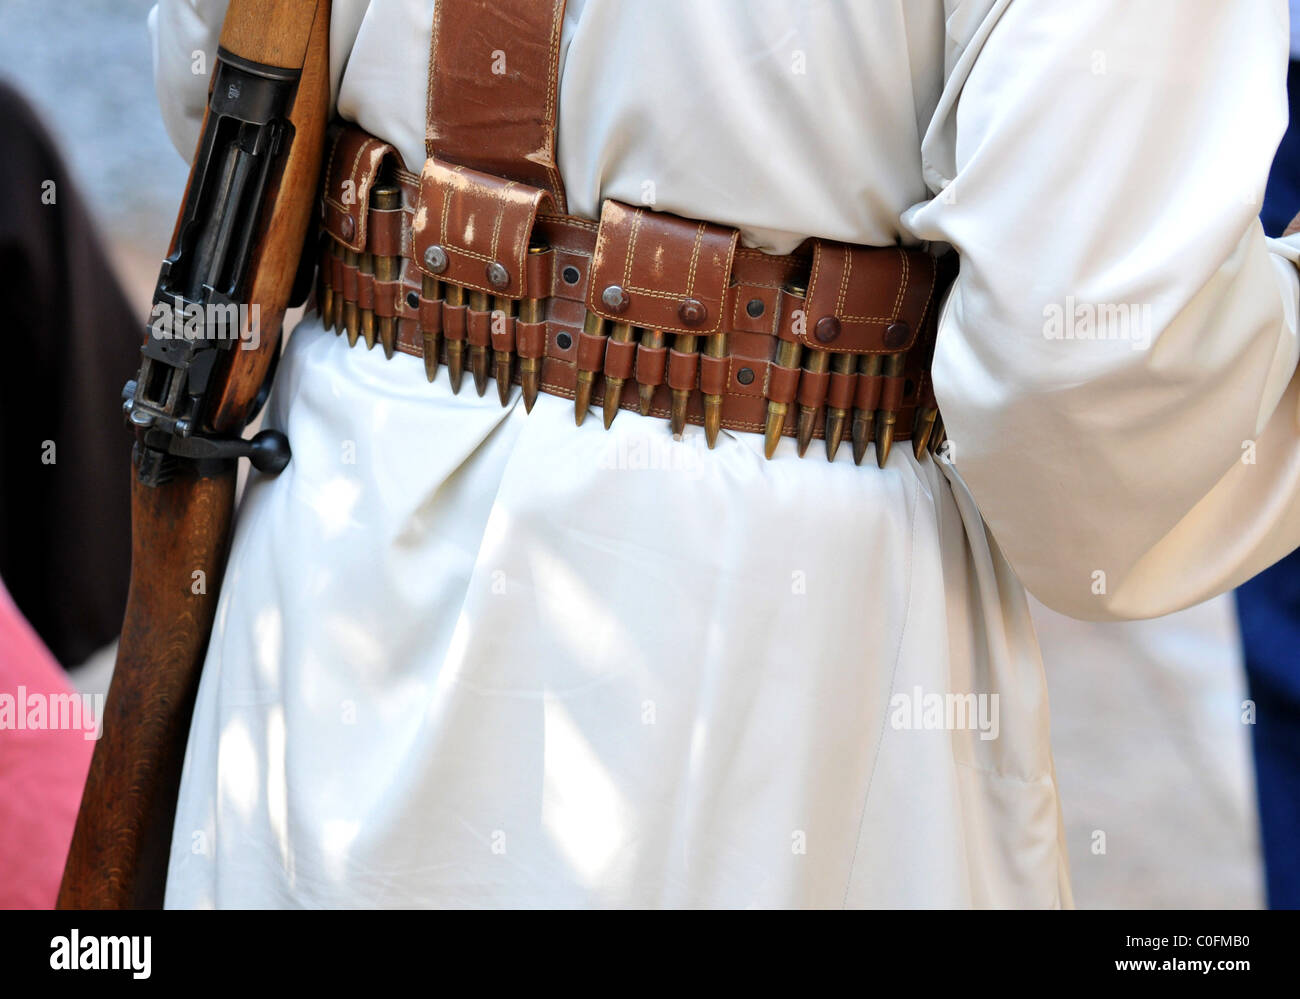 Lee Enfield 303 rifle and bullet belt. - Stock Image